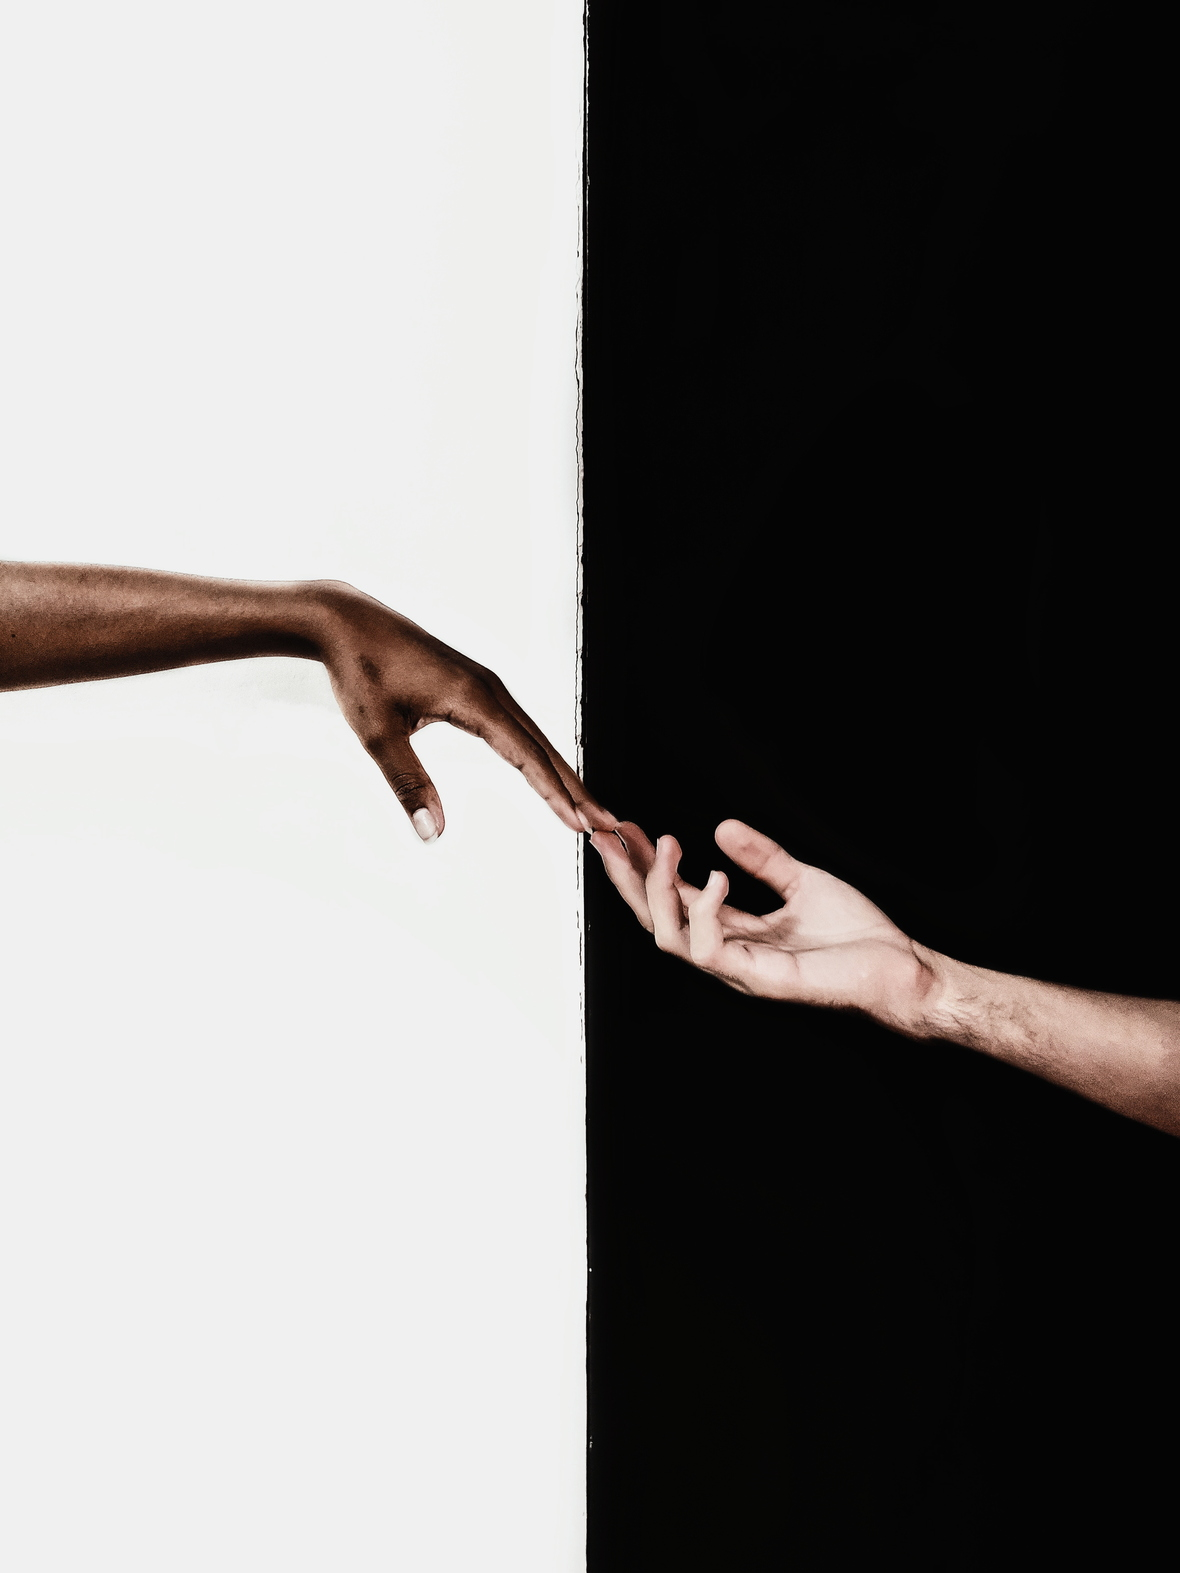 hands-in-front-of-white-and-black-background-3541916